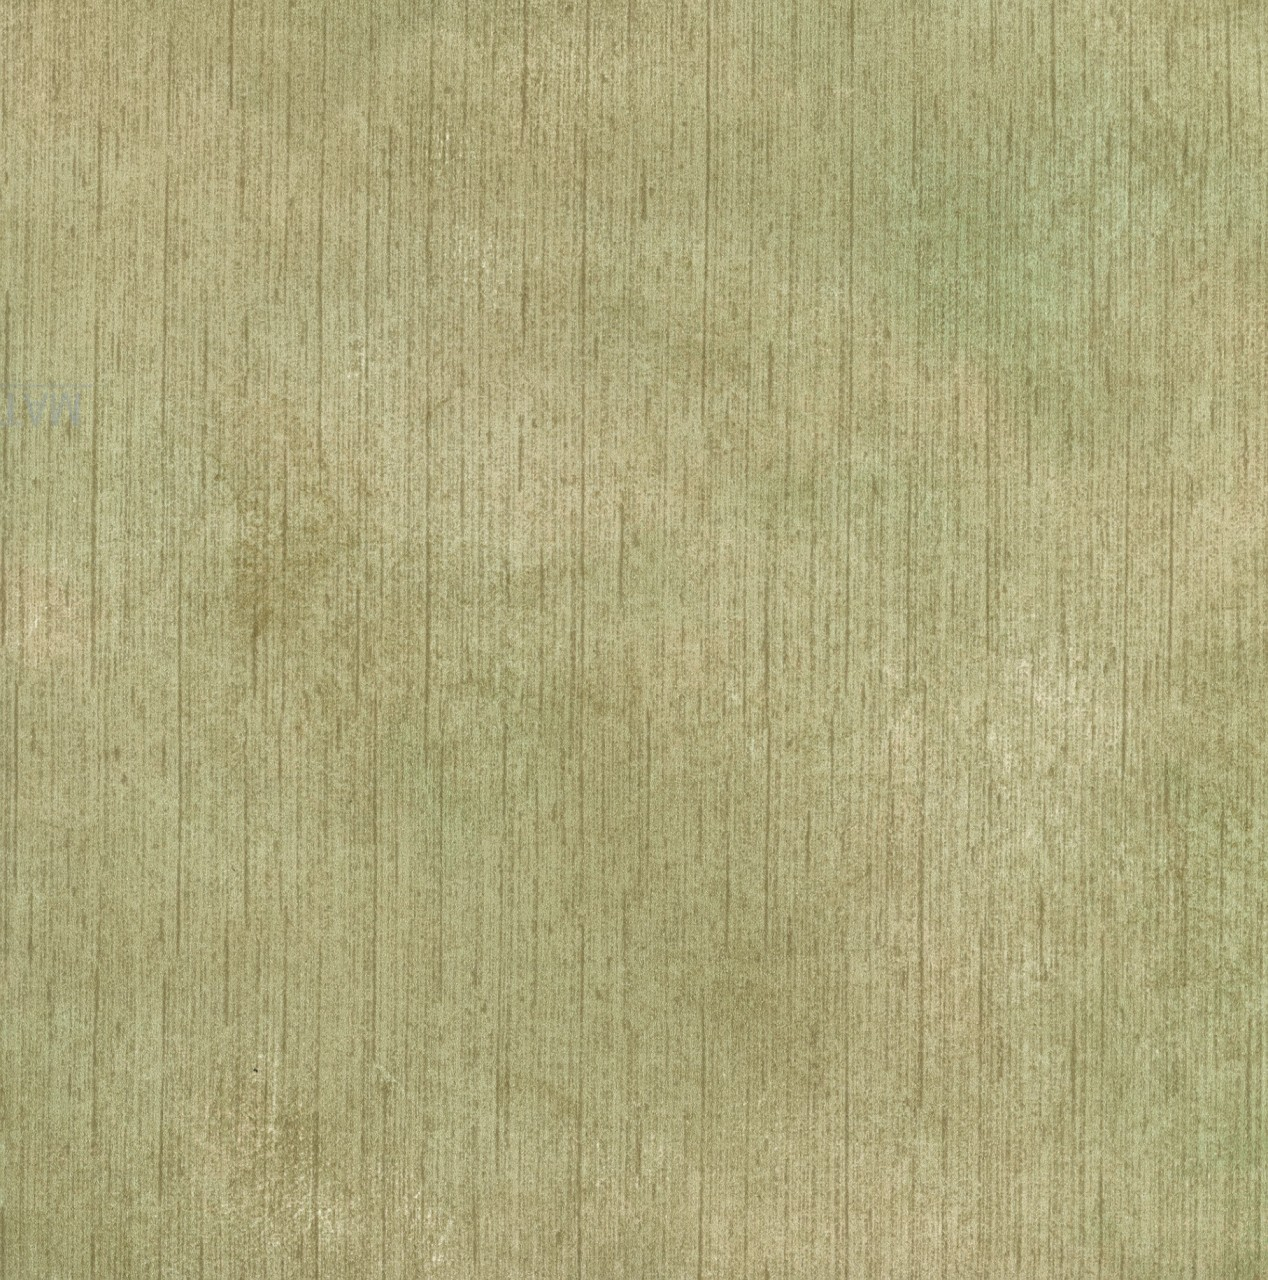 Green MLV34097 Jenney Texture Wallpaper Contemporary Modern 1268x1280